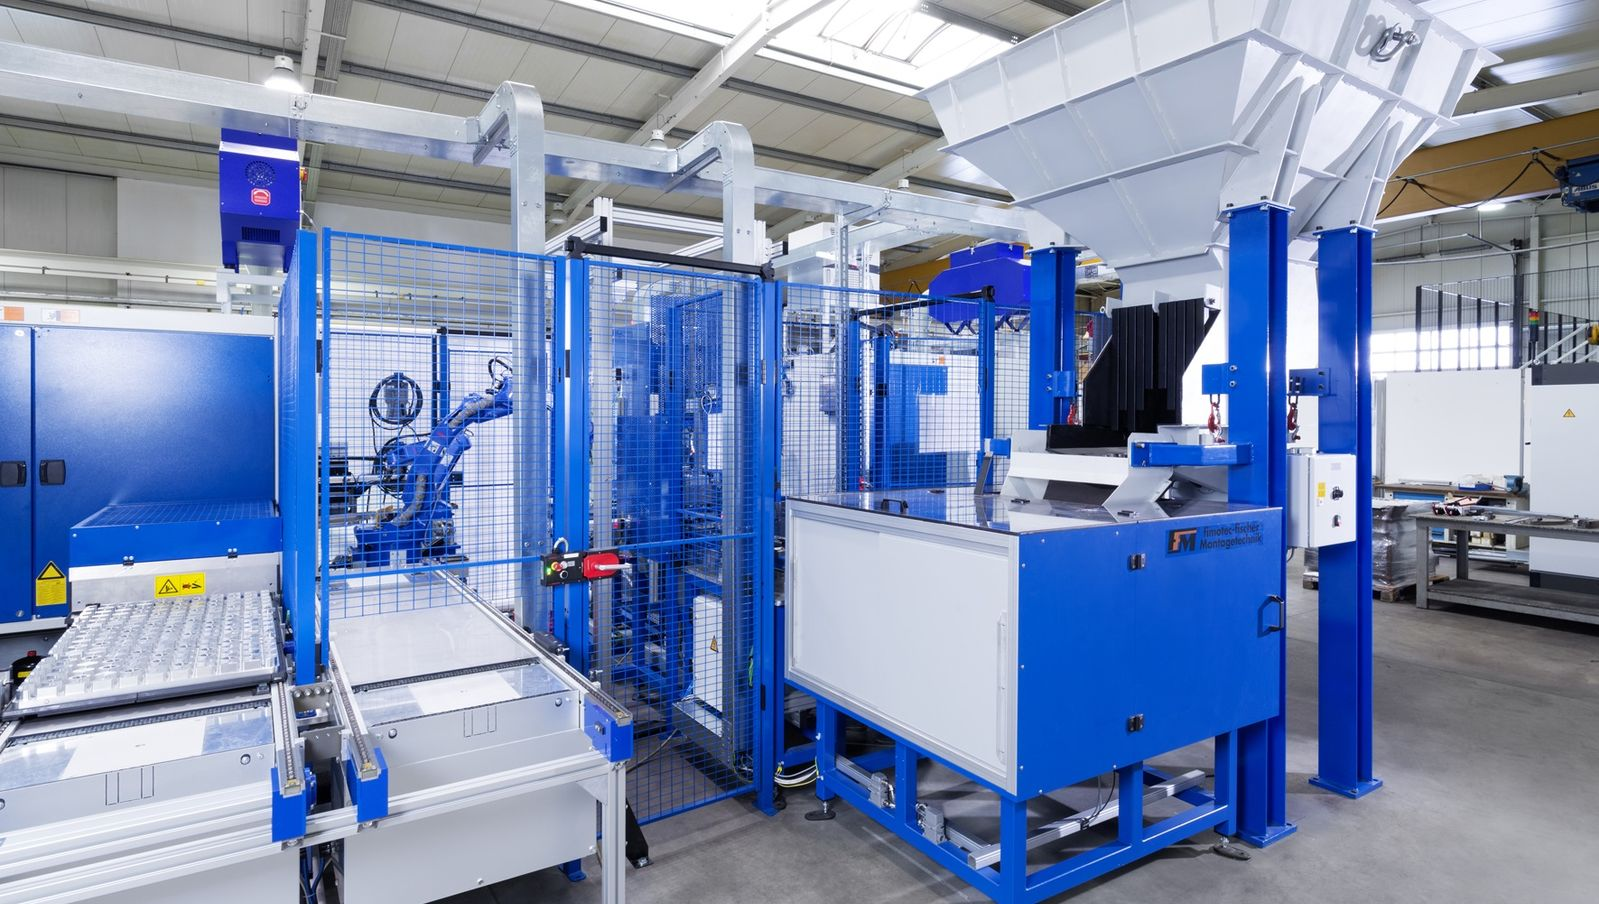 The system includes a bunker for bulk goods and a feeding bench for special parts which are fed on pallets already in the correct orientation.